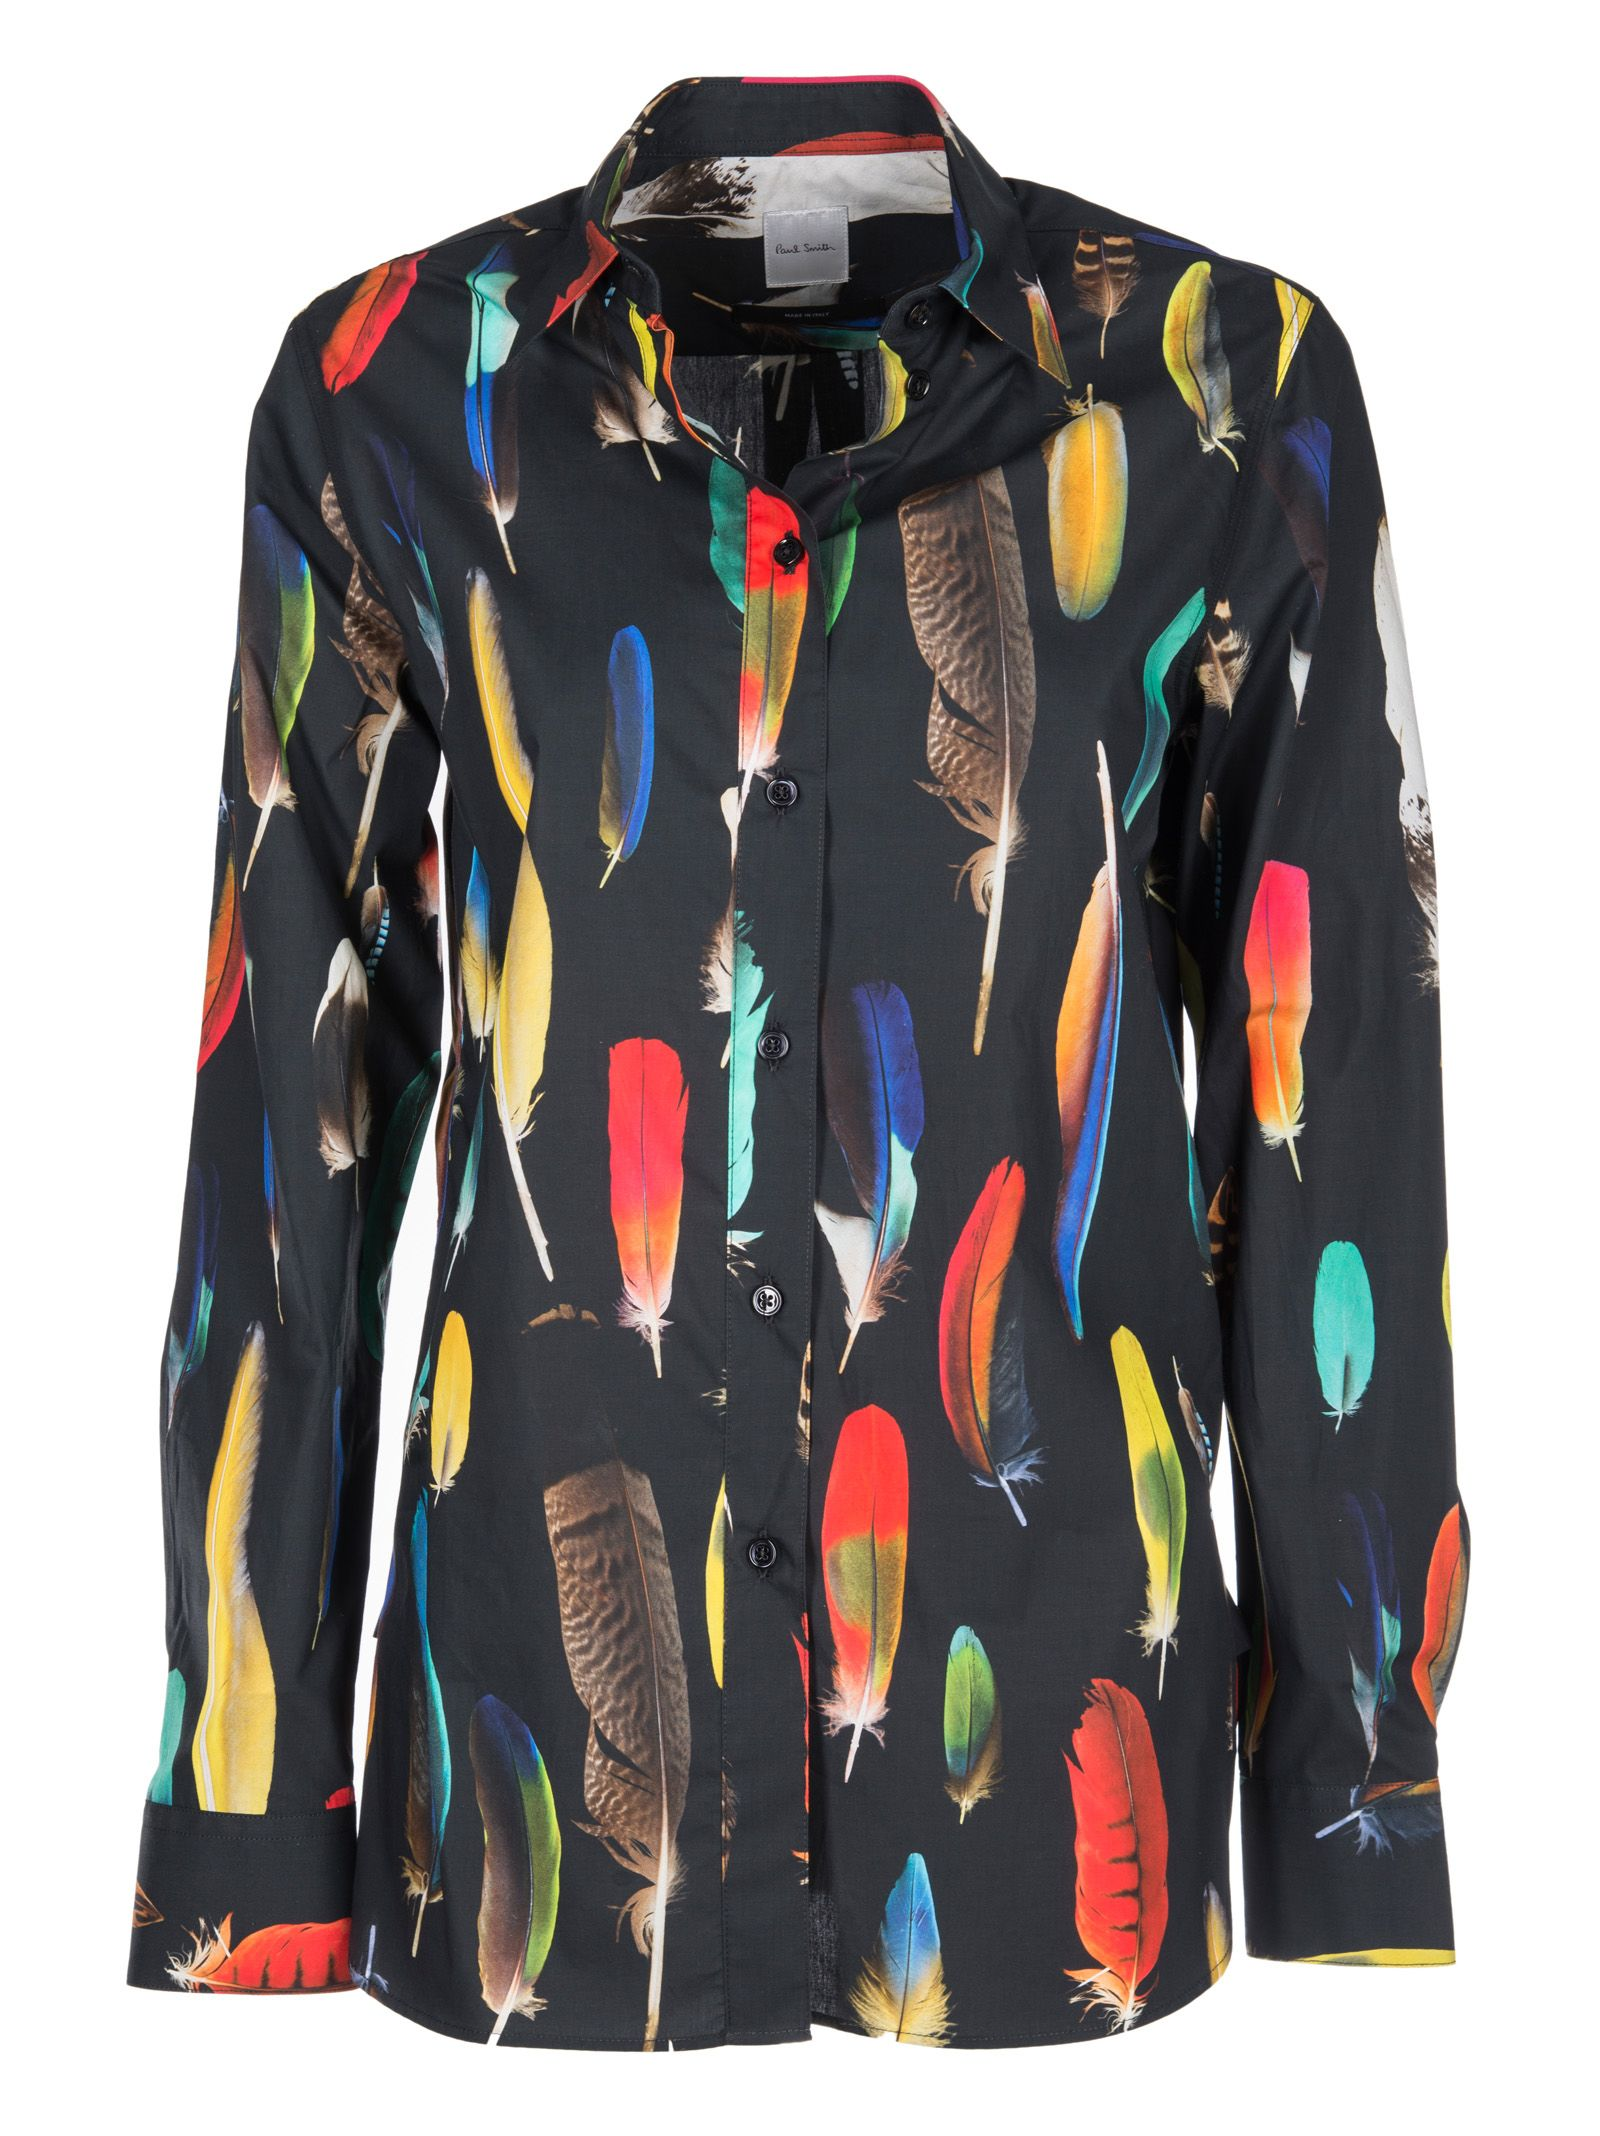 Paul Smith Feather Print Shirt